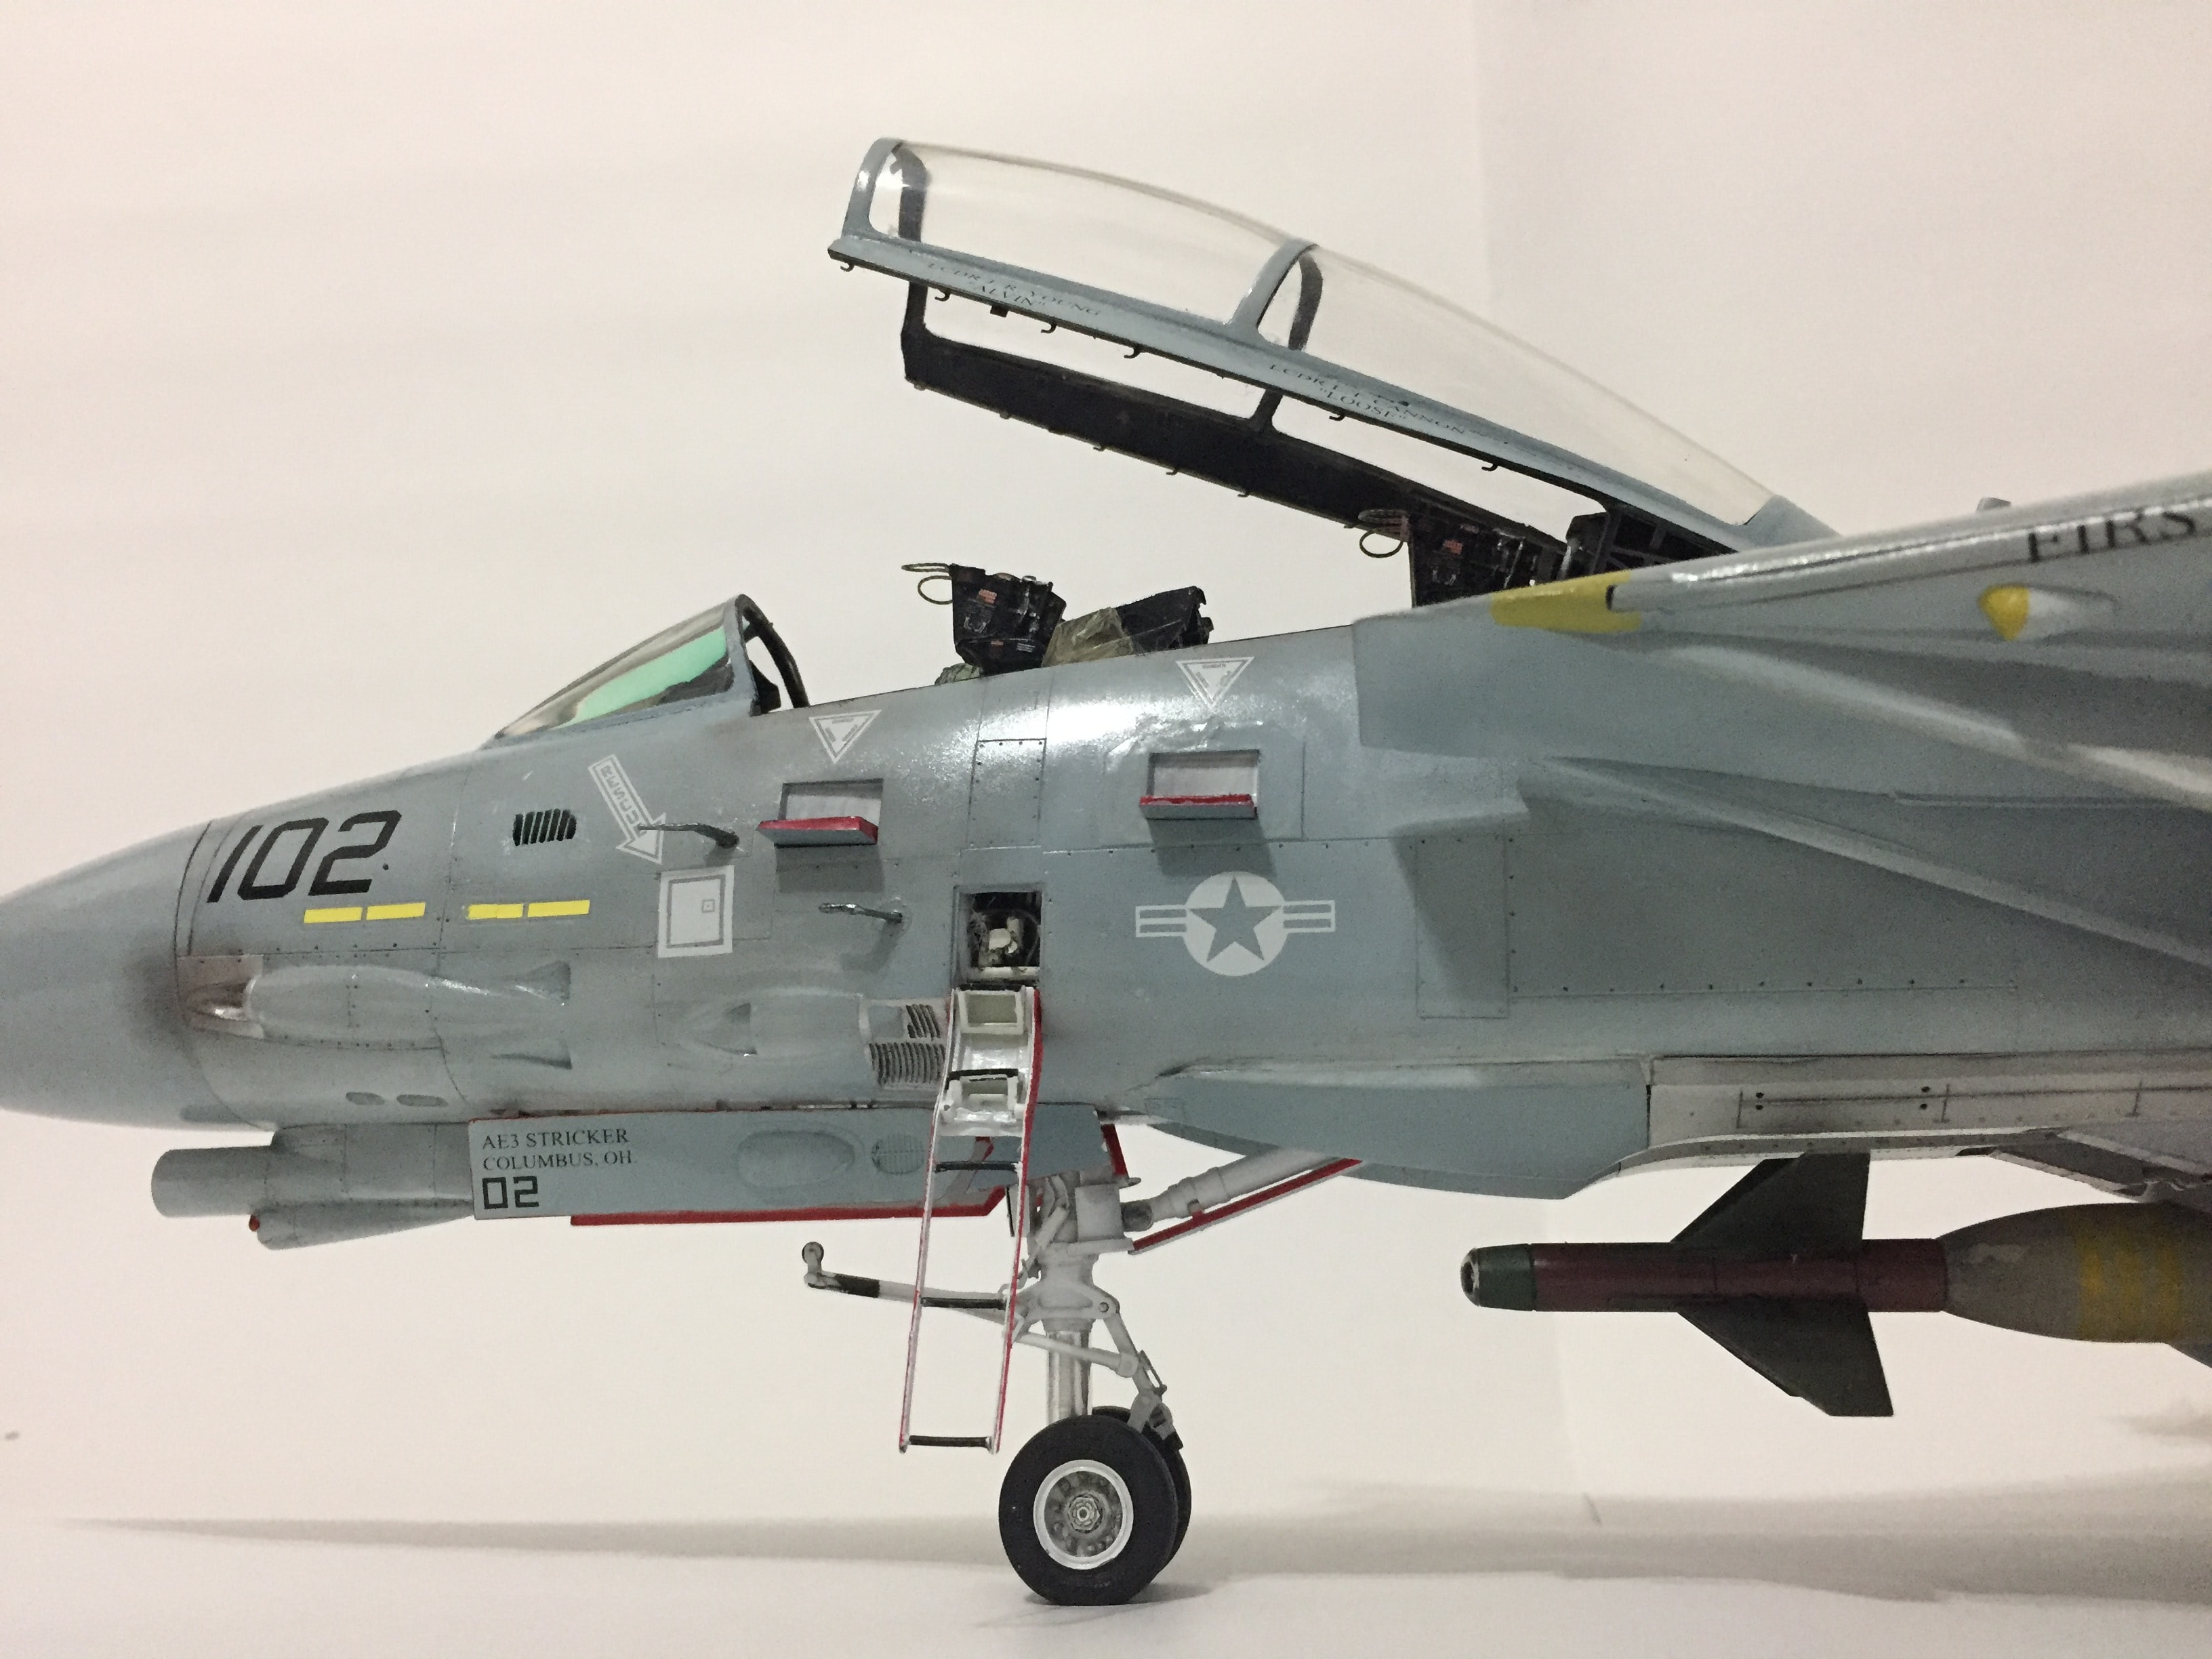 gray 102 fighter plane